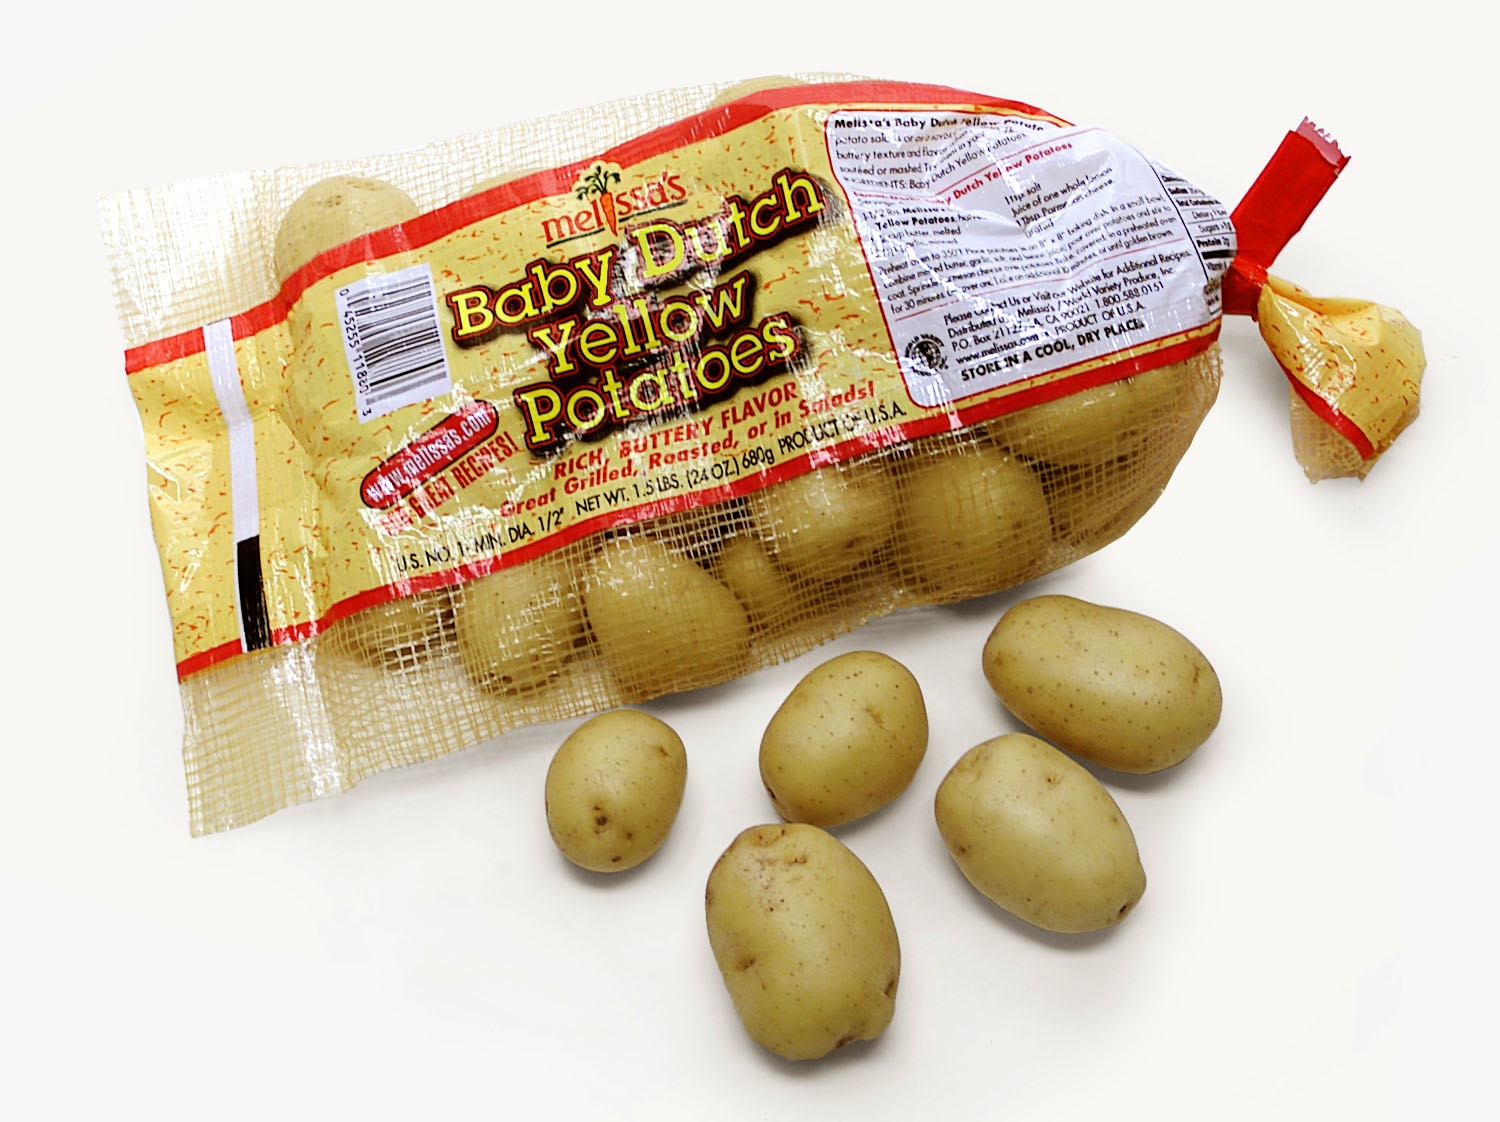 Food writer and food reviews recipes for melissa 39 s baby dutch yellow potatoes bite of the - What to do with potatoes ...